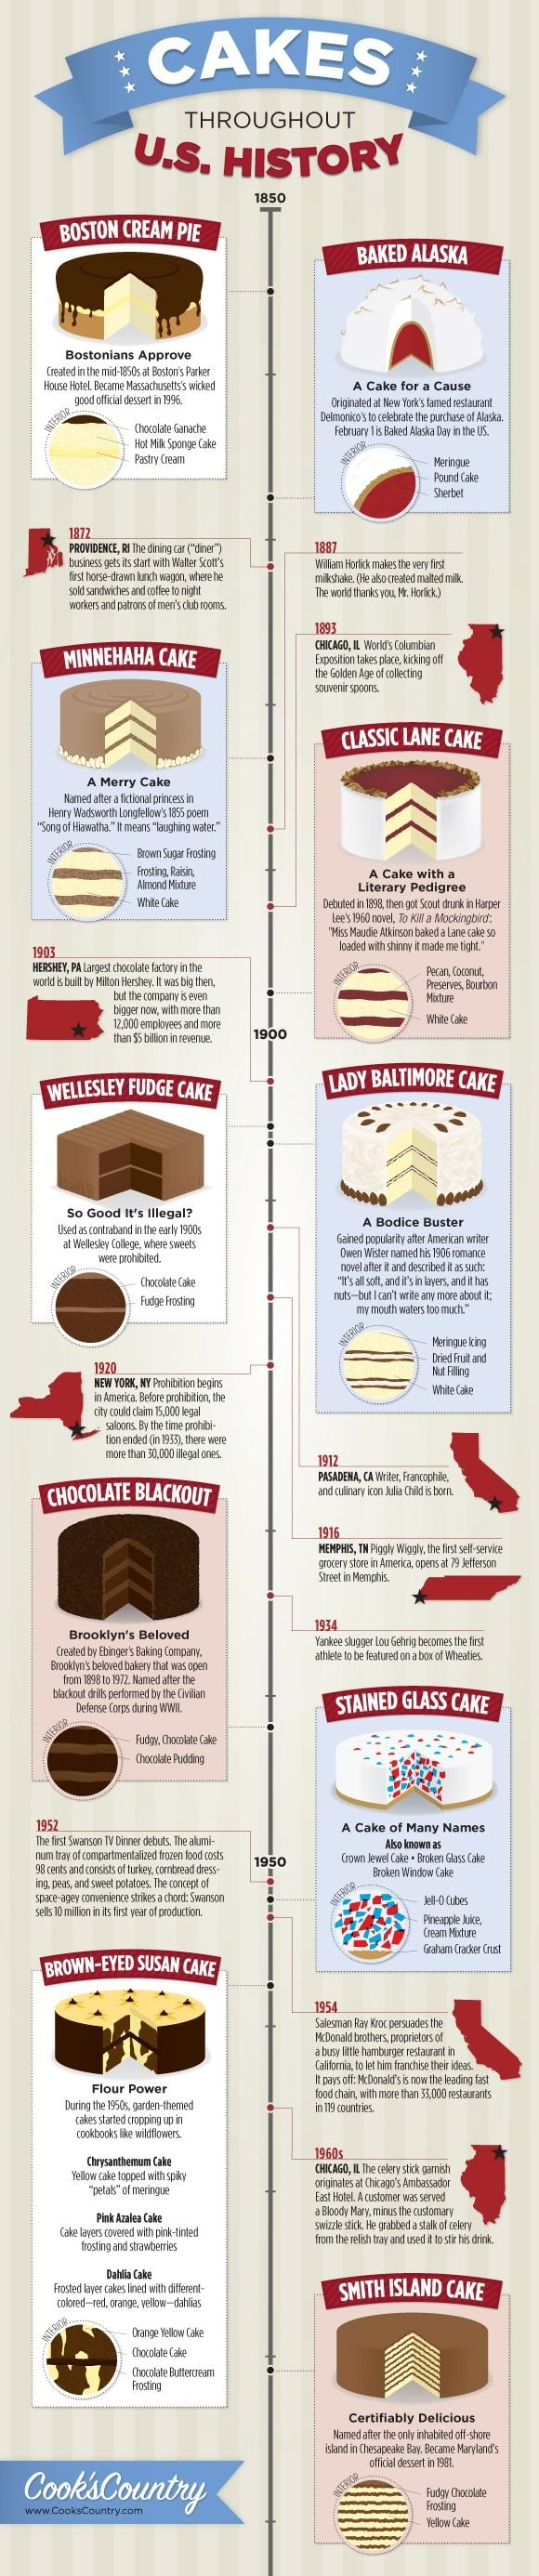 Cakes Throughout U.S. History